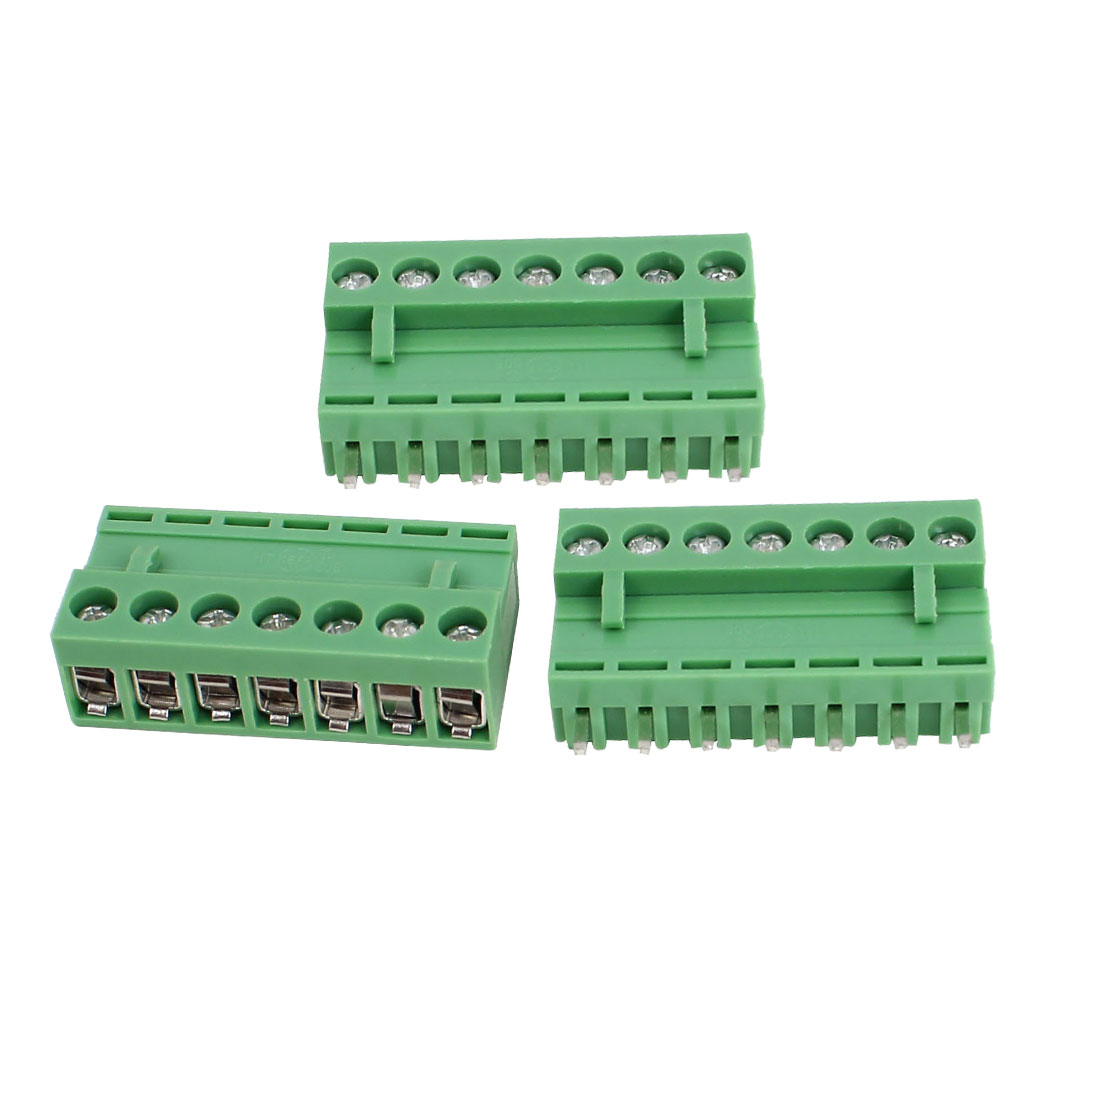 300V 10A 7P Pole 5.08mm Pitch PCB Screw Terminal Block Straight Connector 3pcs Green